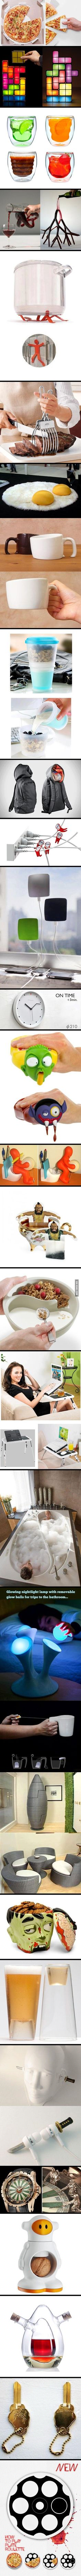 Yet another line of genius inventions that should be sold anywhere and everywhere.